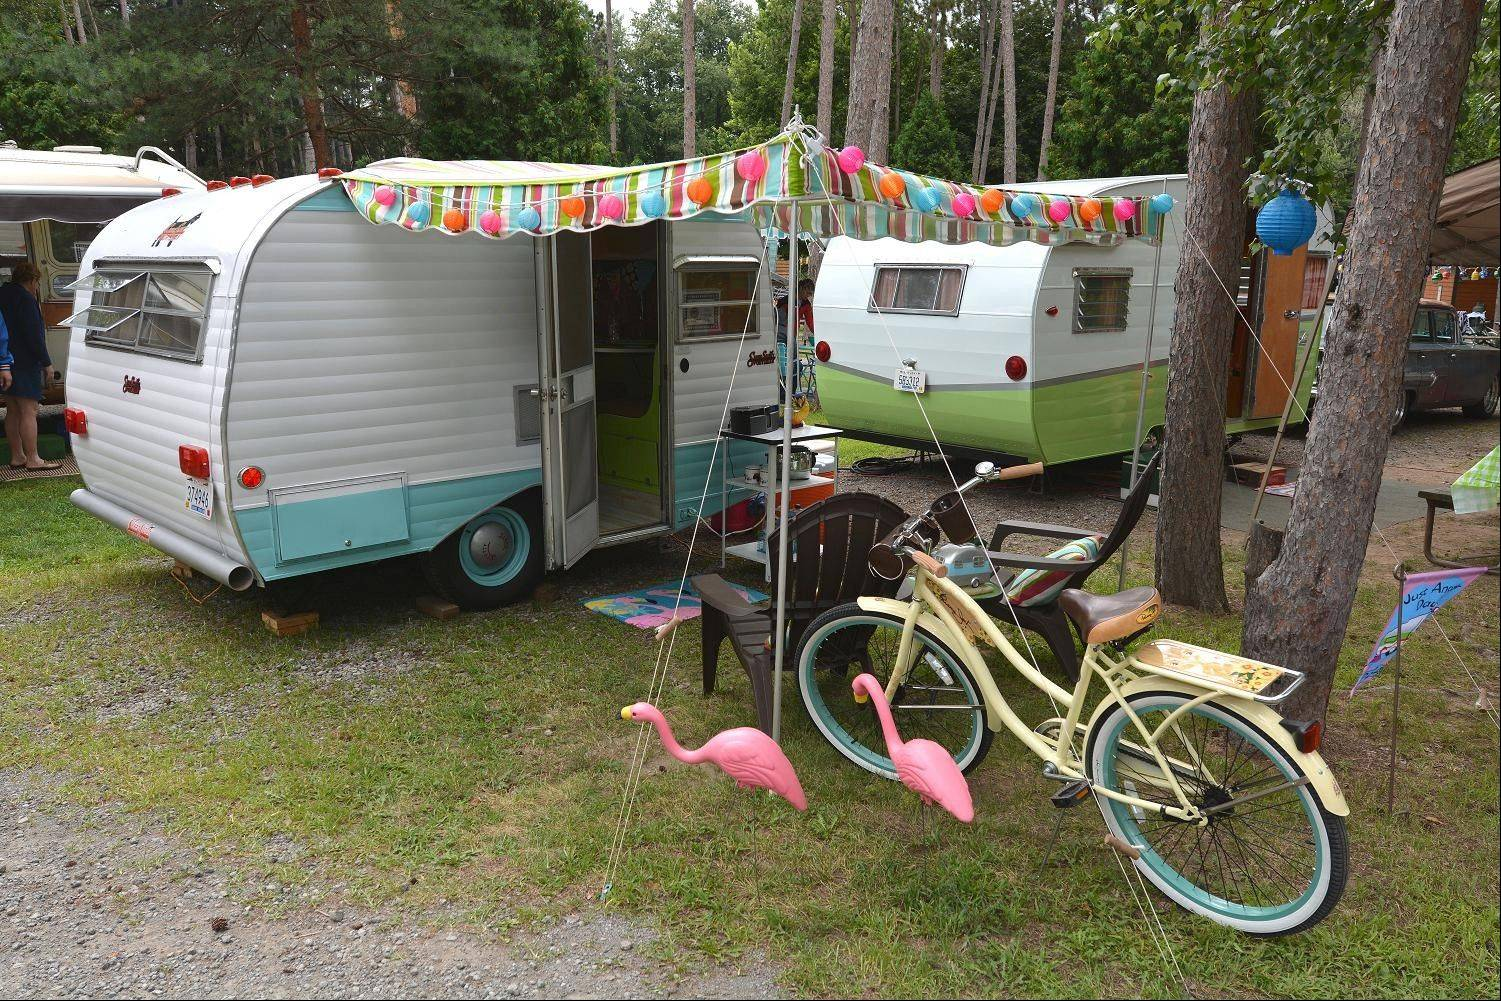 The campground is dotted not only with vintage trailers but other whimsical touches from the 1950s and 60s, such as bicycles, party lights and yard decorations.